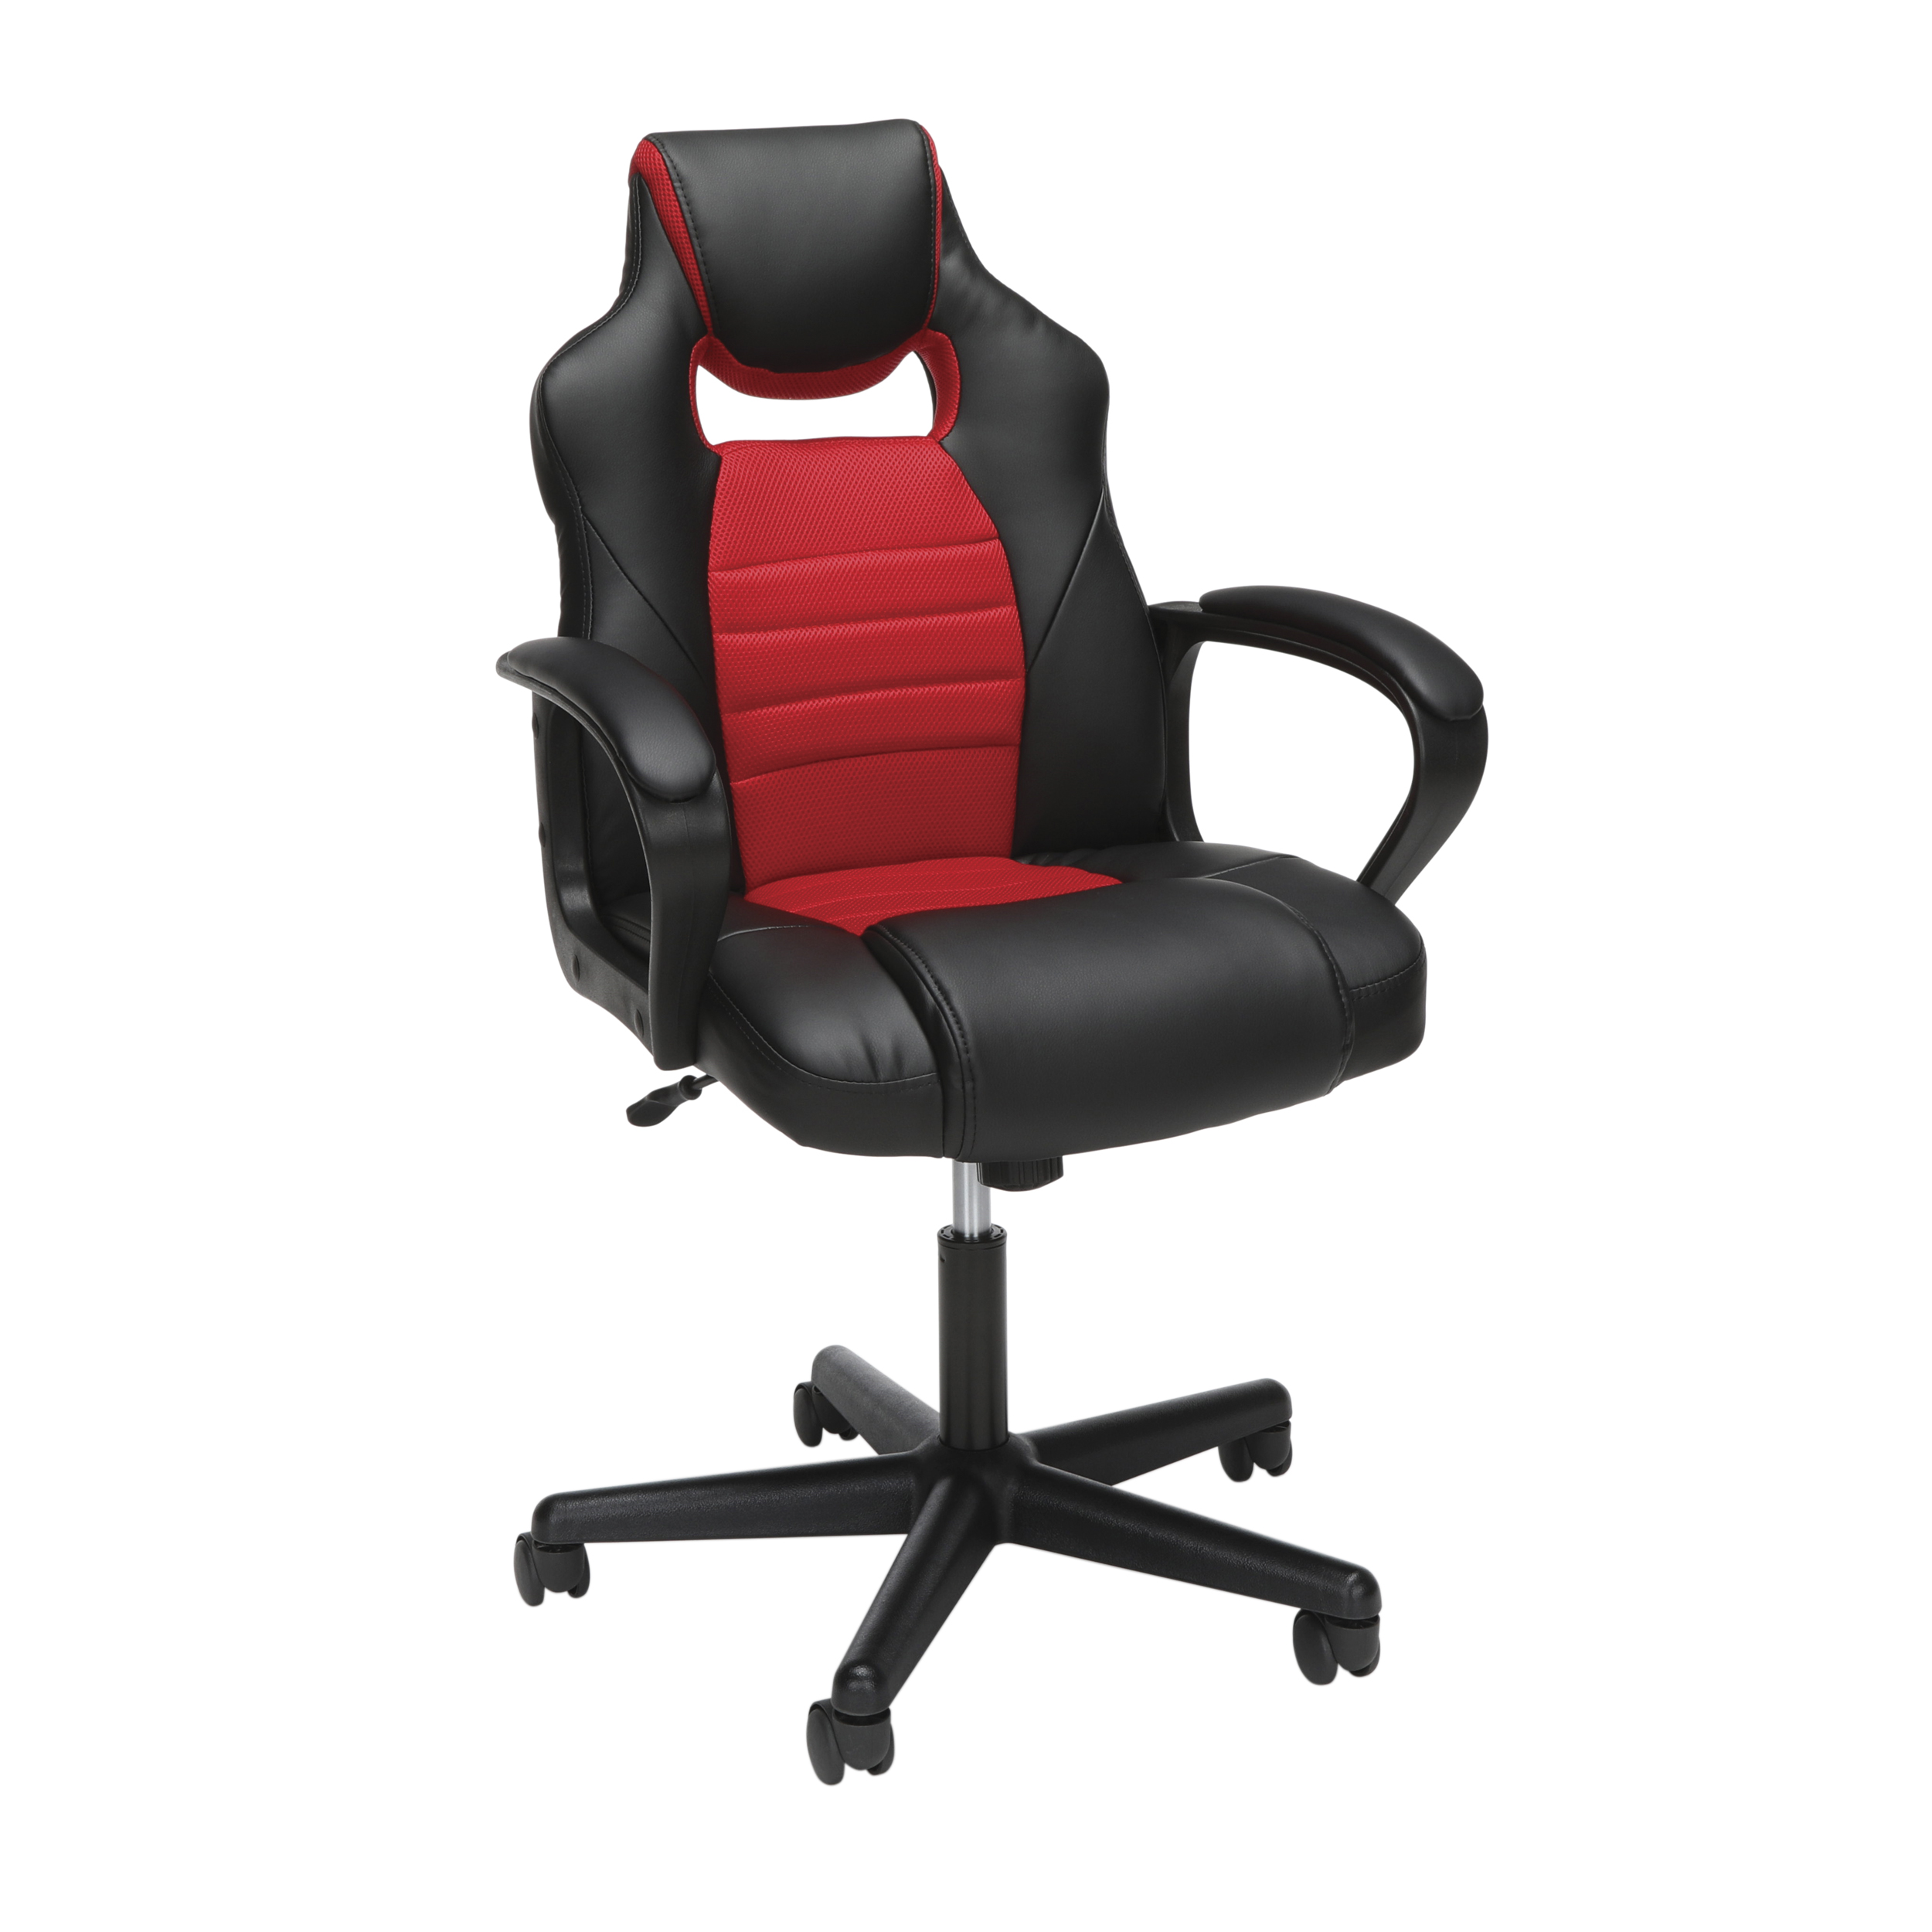 Essentials By Ofm Ess 3083 Racing Style Gaming Chair